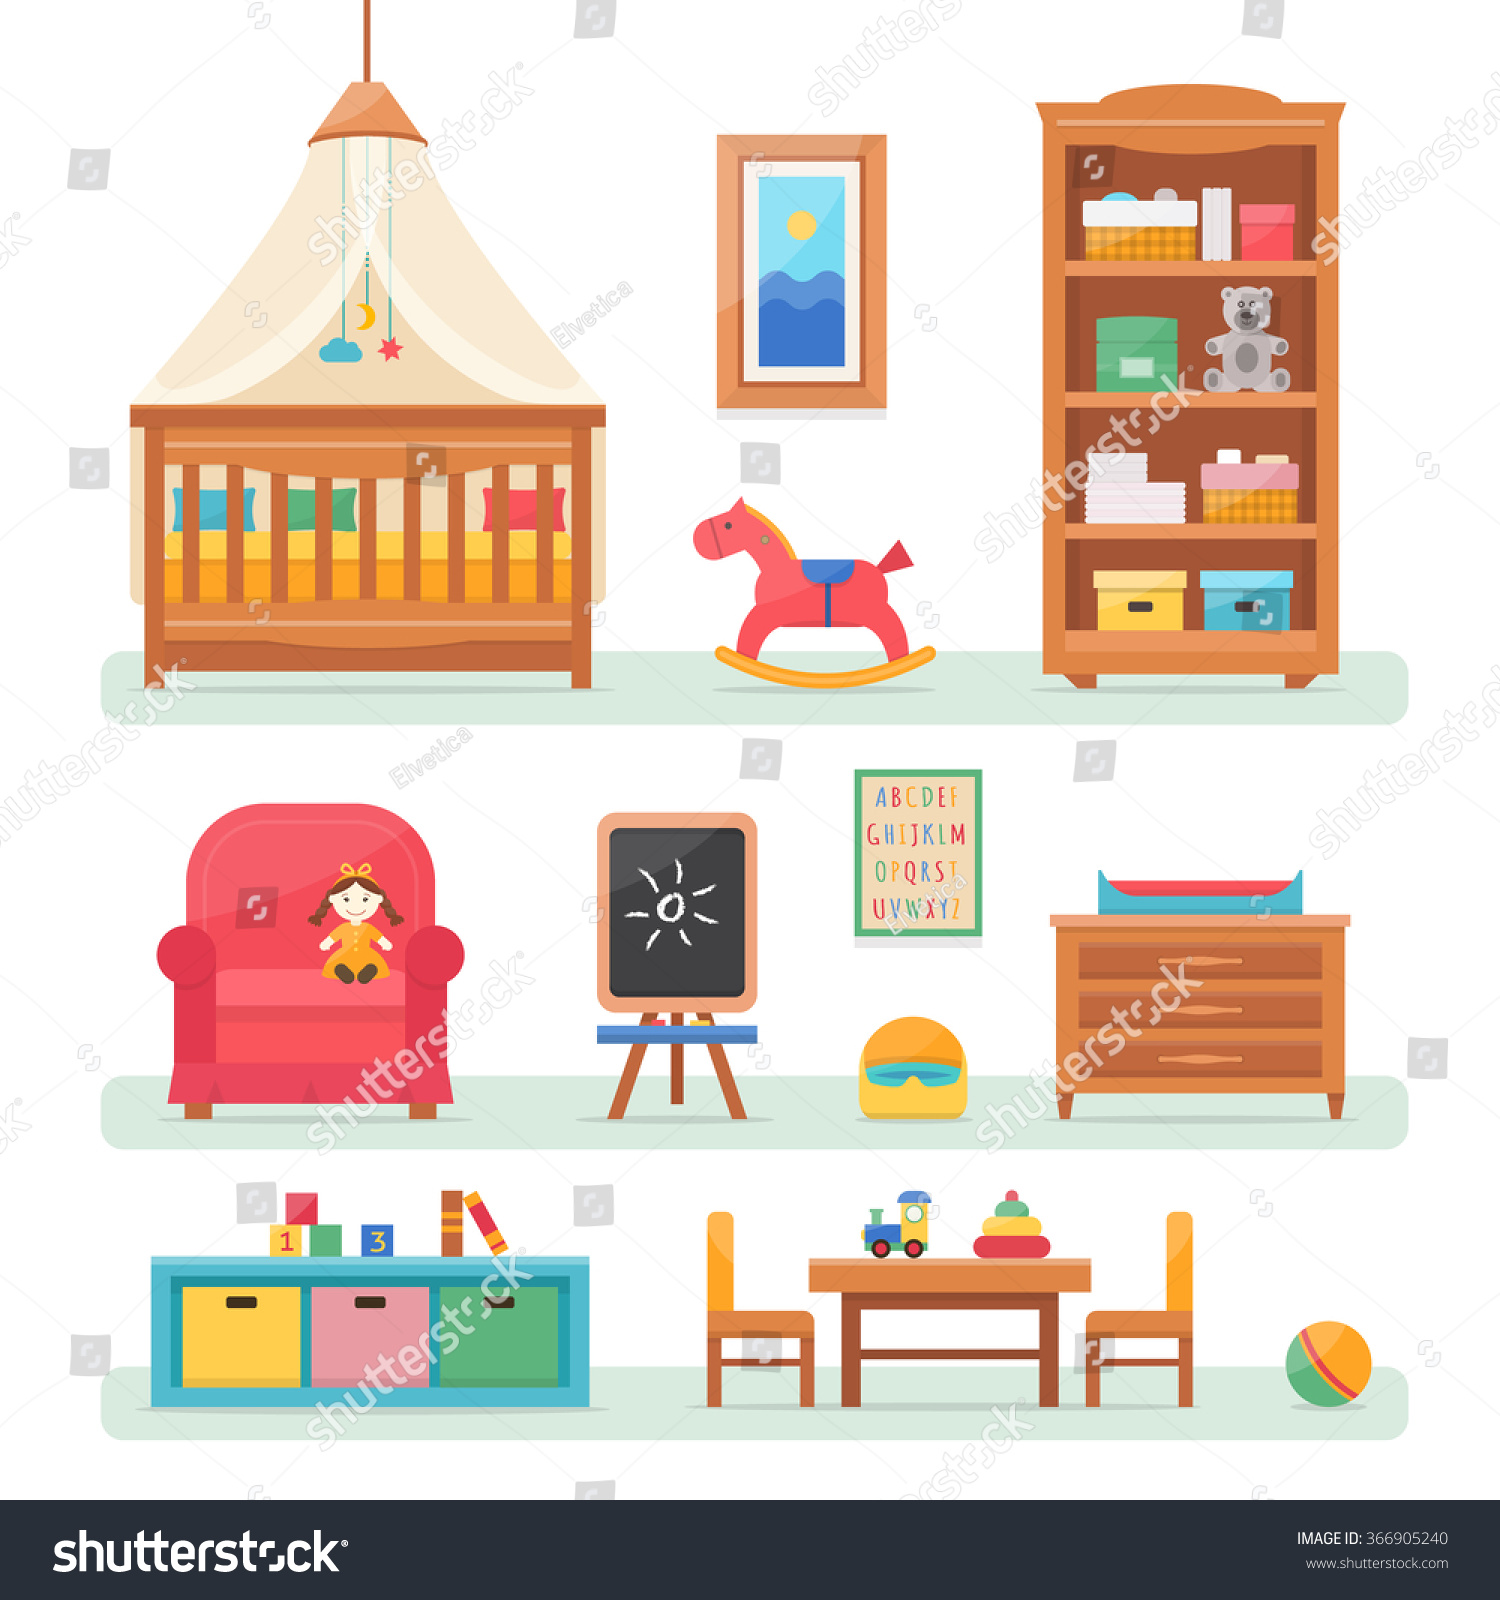 Babys Room Design With Play Set